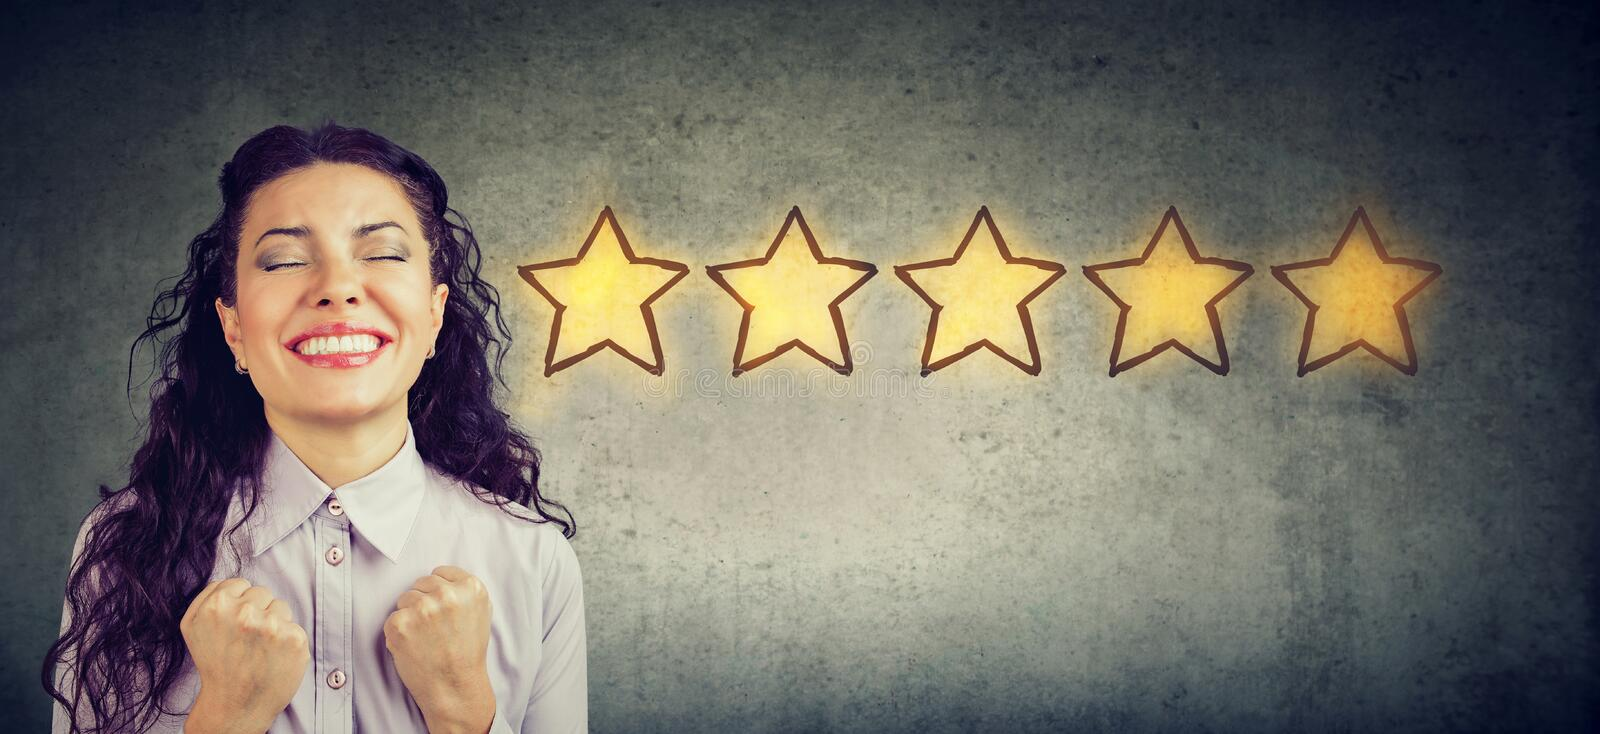 Ð¡heerful beautiful woman smiling celebrating five stars rating for service provided royalty free stock images